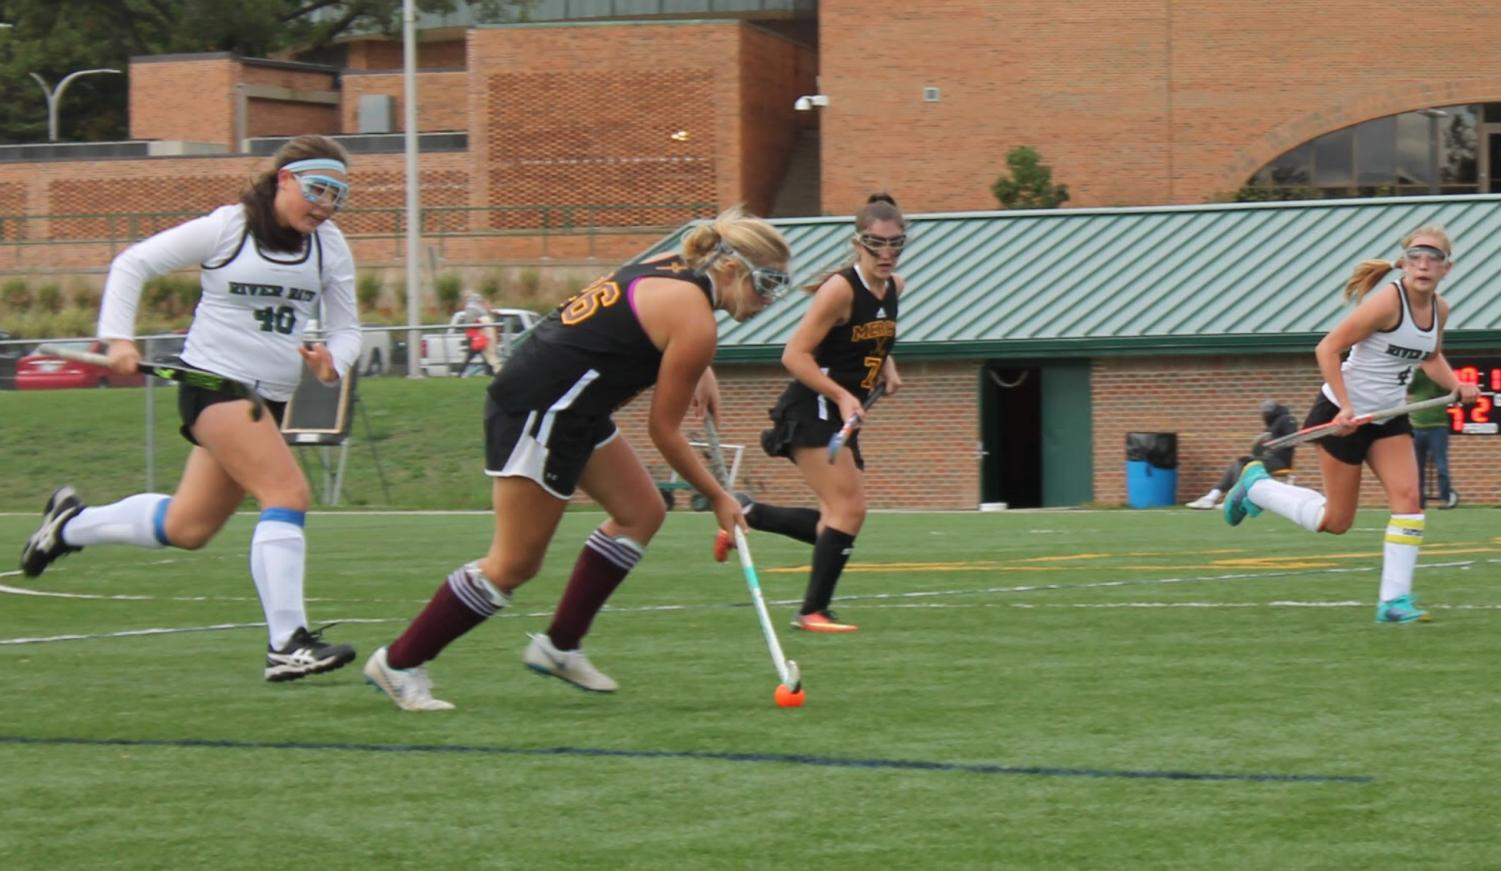 Senior Sarah Cassidy dribbles past the defense in one of her last field hockey games at Mercy. Photo by Keiley Black